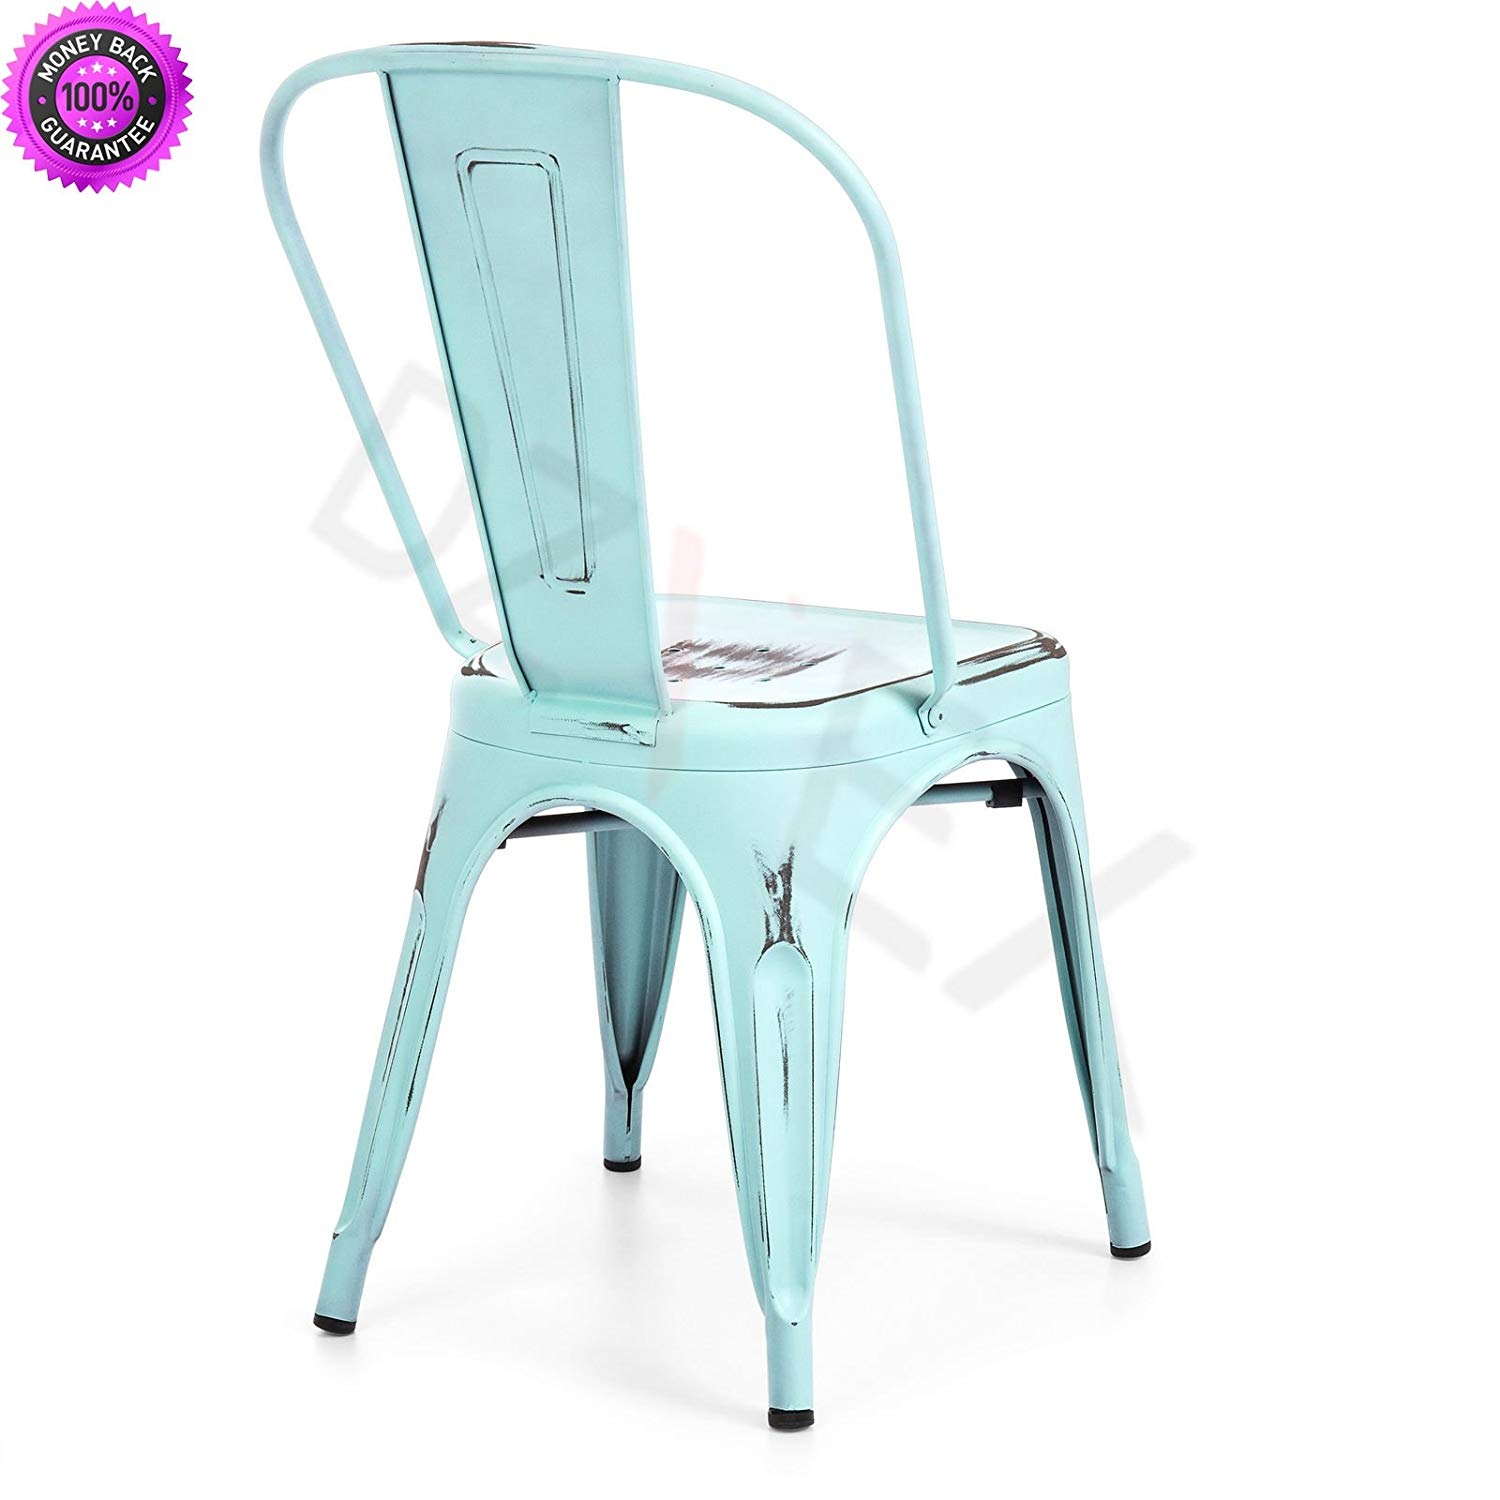 DzVeX_Set of 4 Stacking Metal Distressed Industrial Style Dining Chairs (Blue) And restaurant chairs stacking chairs waiting room chairs office furniture chair mats for carpet chairs for sale cheap